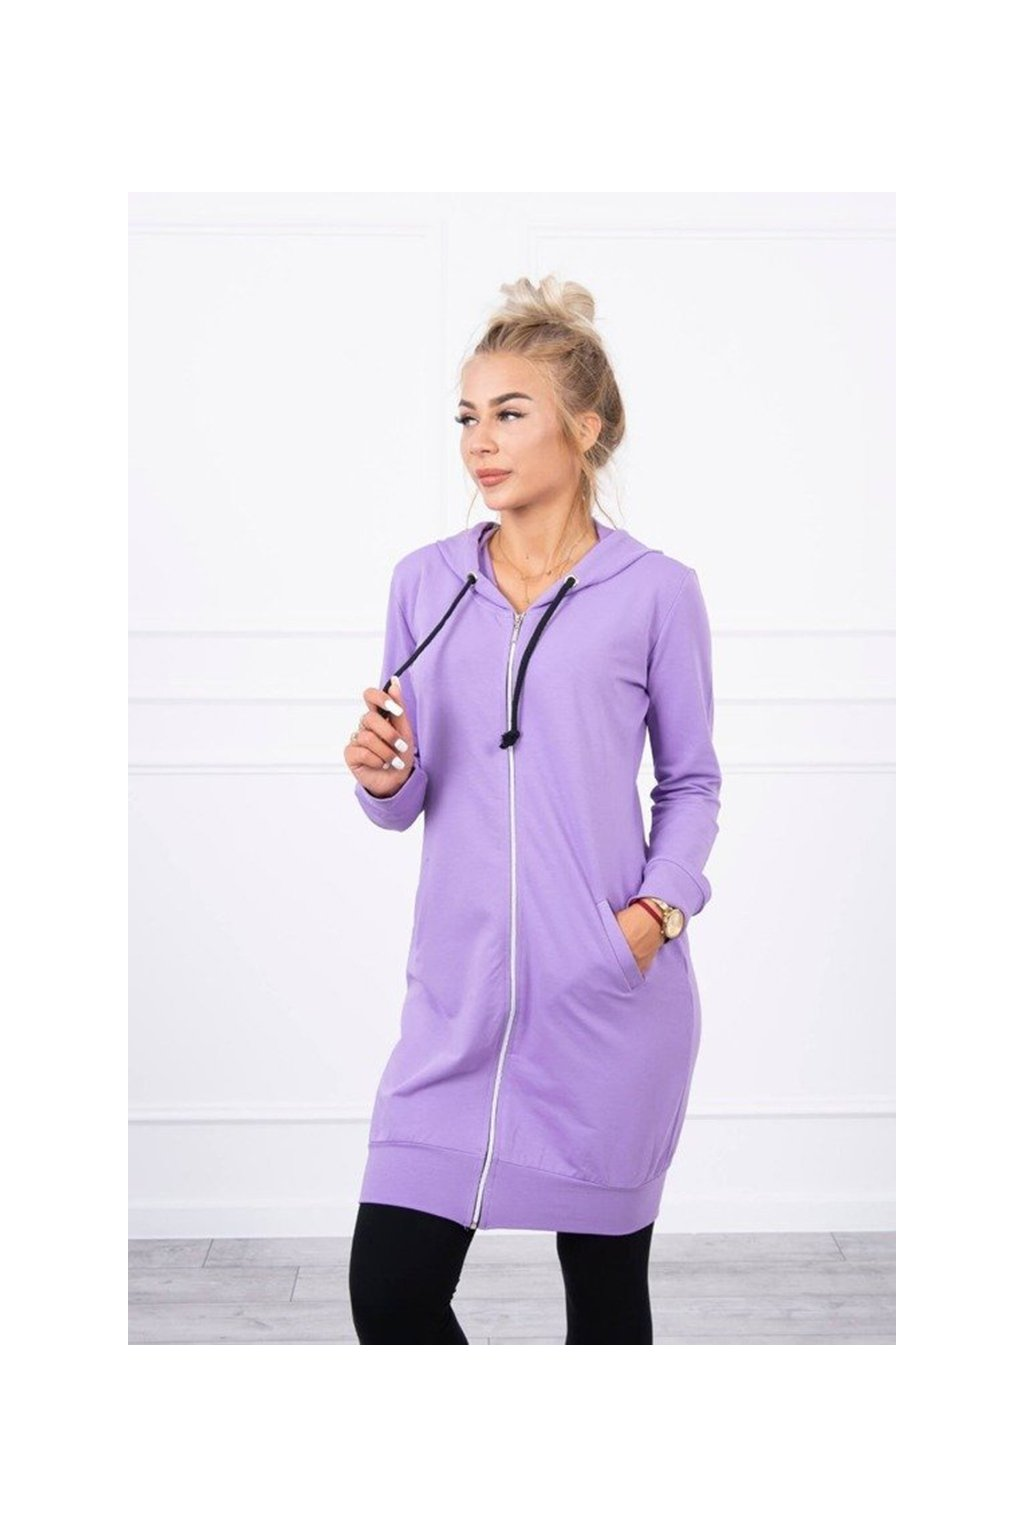 eng pm Hooded dress with a hood dark purple 18081 2